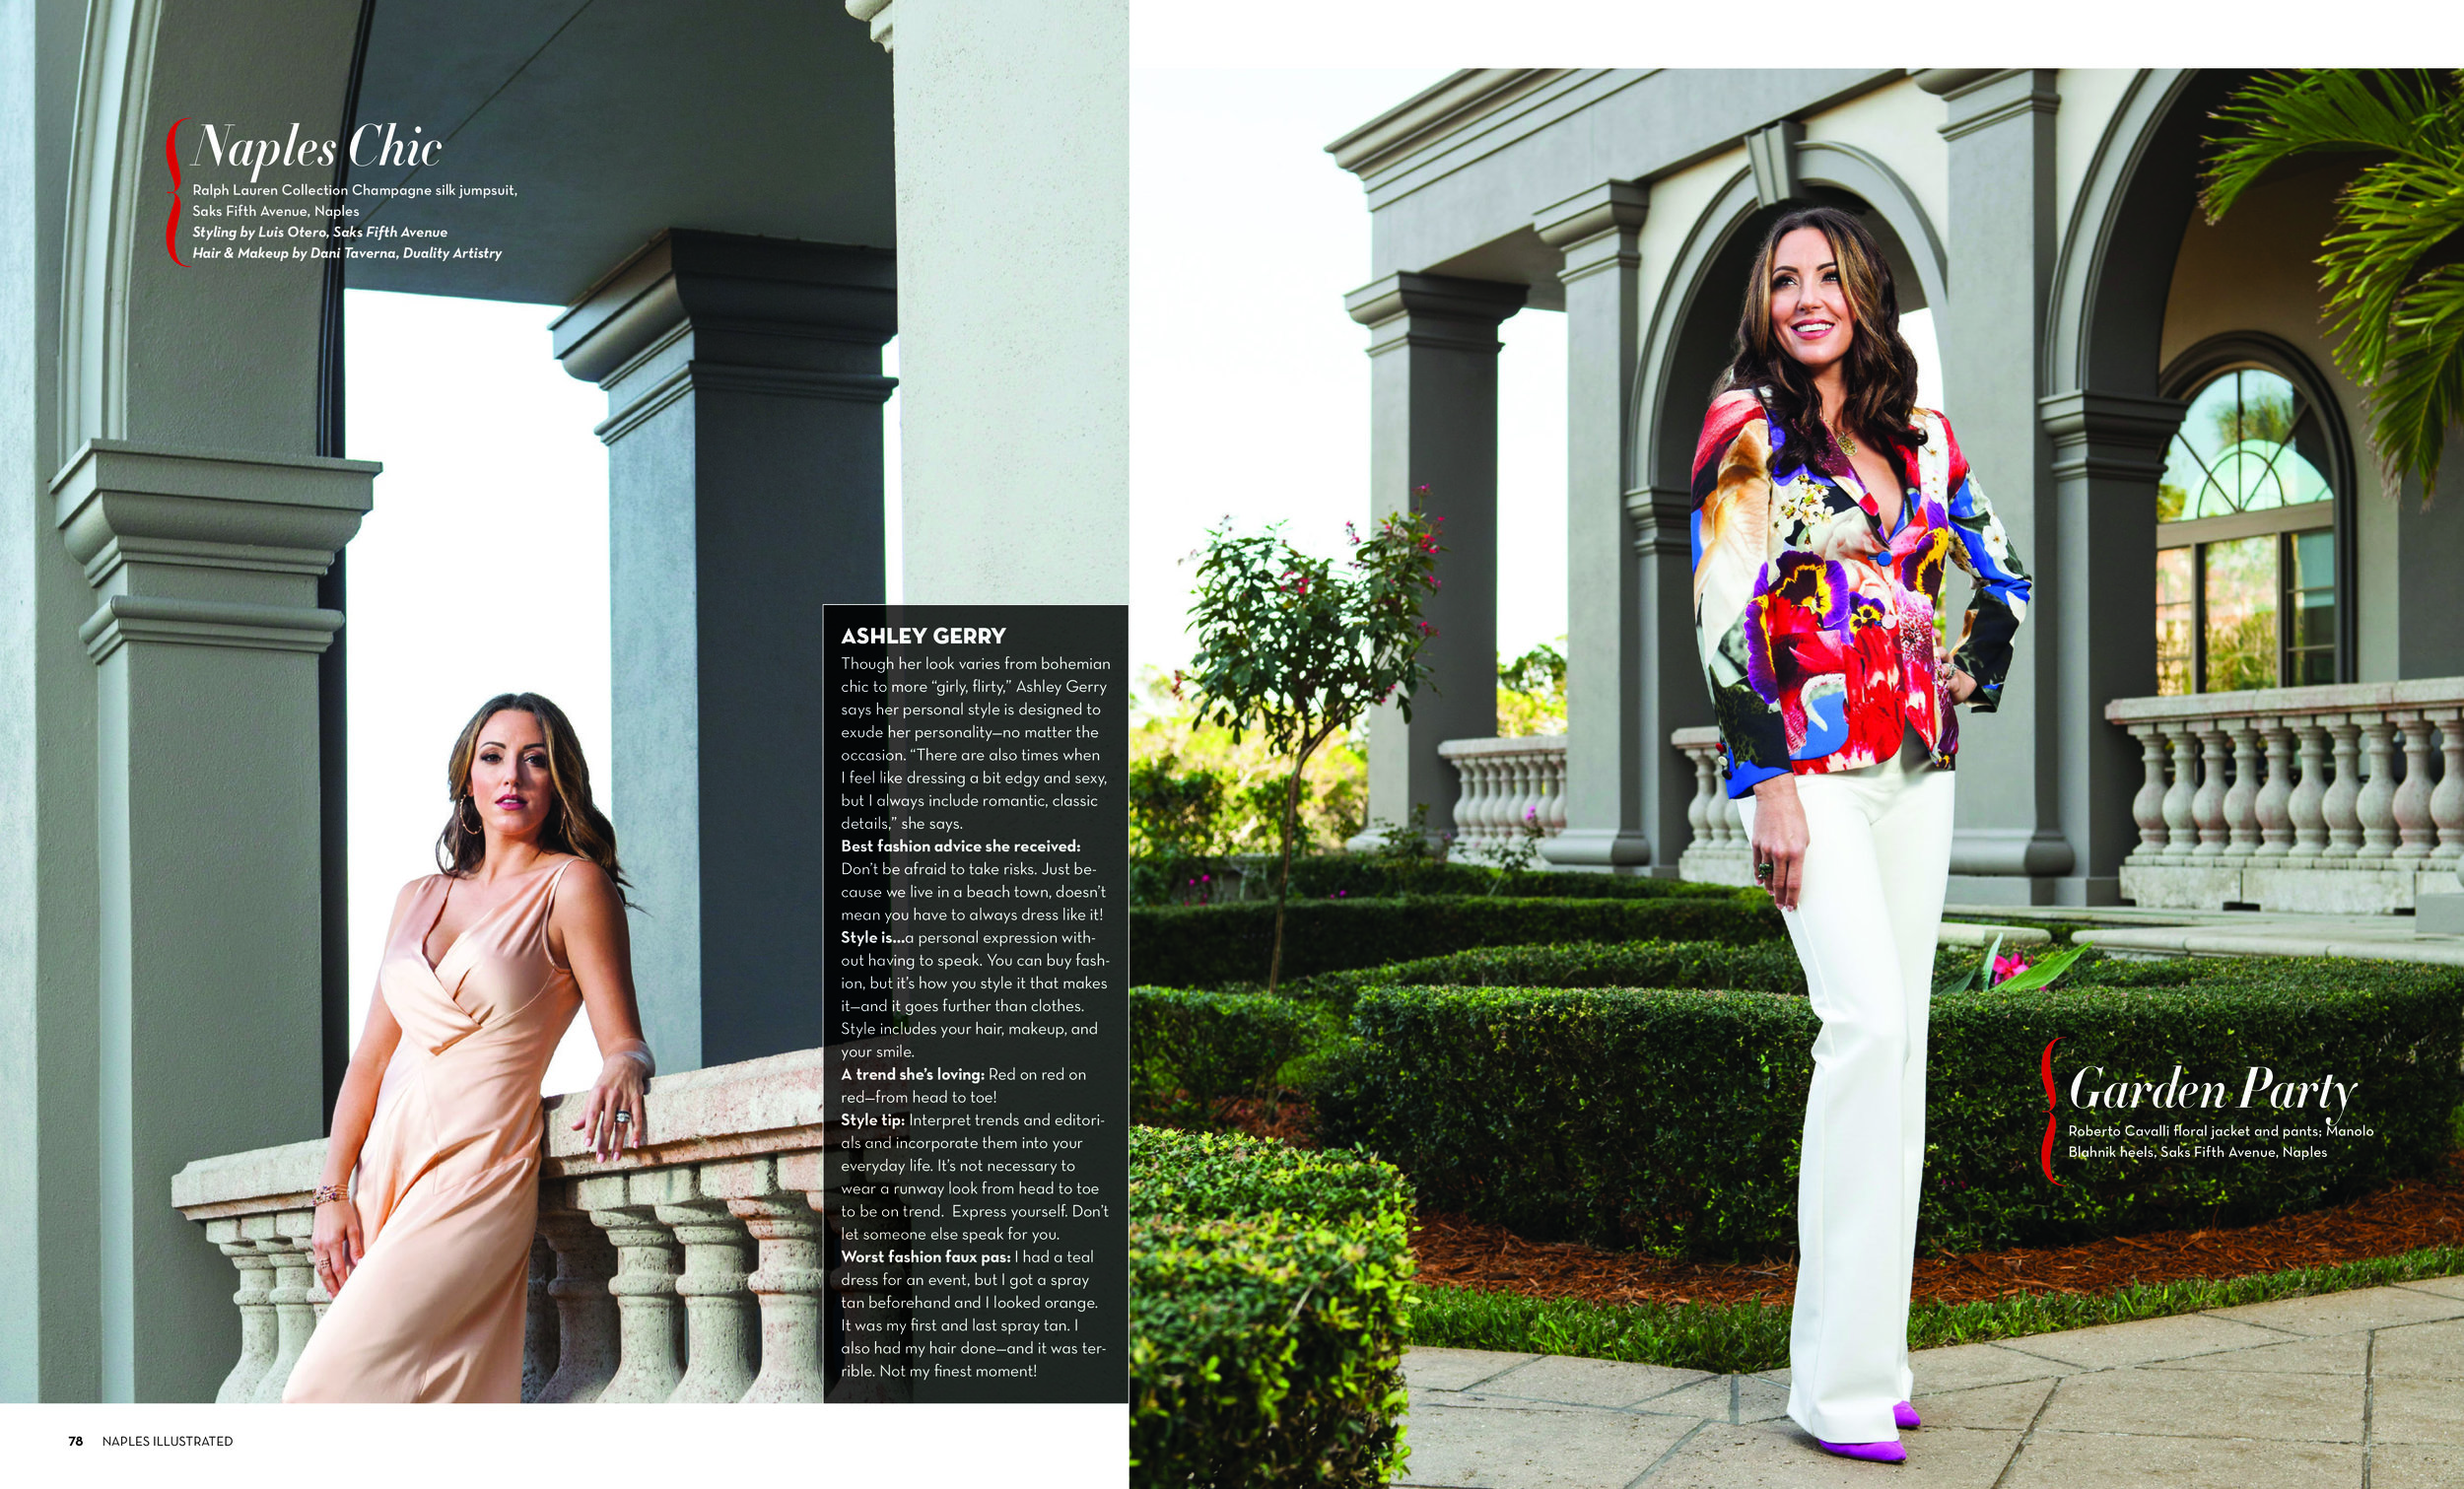 Ashley Gerry Covergirl shot on location at the Ritz Carlton Naples Beach Resort for the March 2018 Issue of Naples Illustrated Magazine. Thanks to these amazing ladies for killing it and being so darn glamorous for my camera! Mucho Gusto Chicas. #lovelyladies #naplesflorida #magazinecovers #lifestyleportraits #miamiflorida #miamiphotographer #naplesphotographer